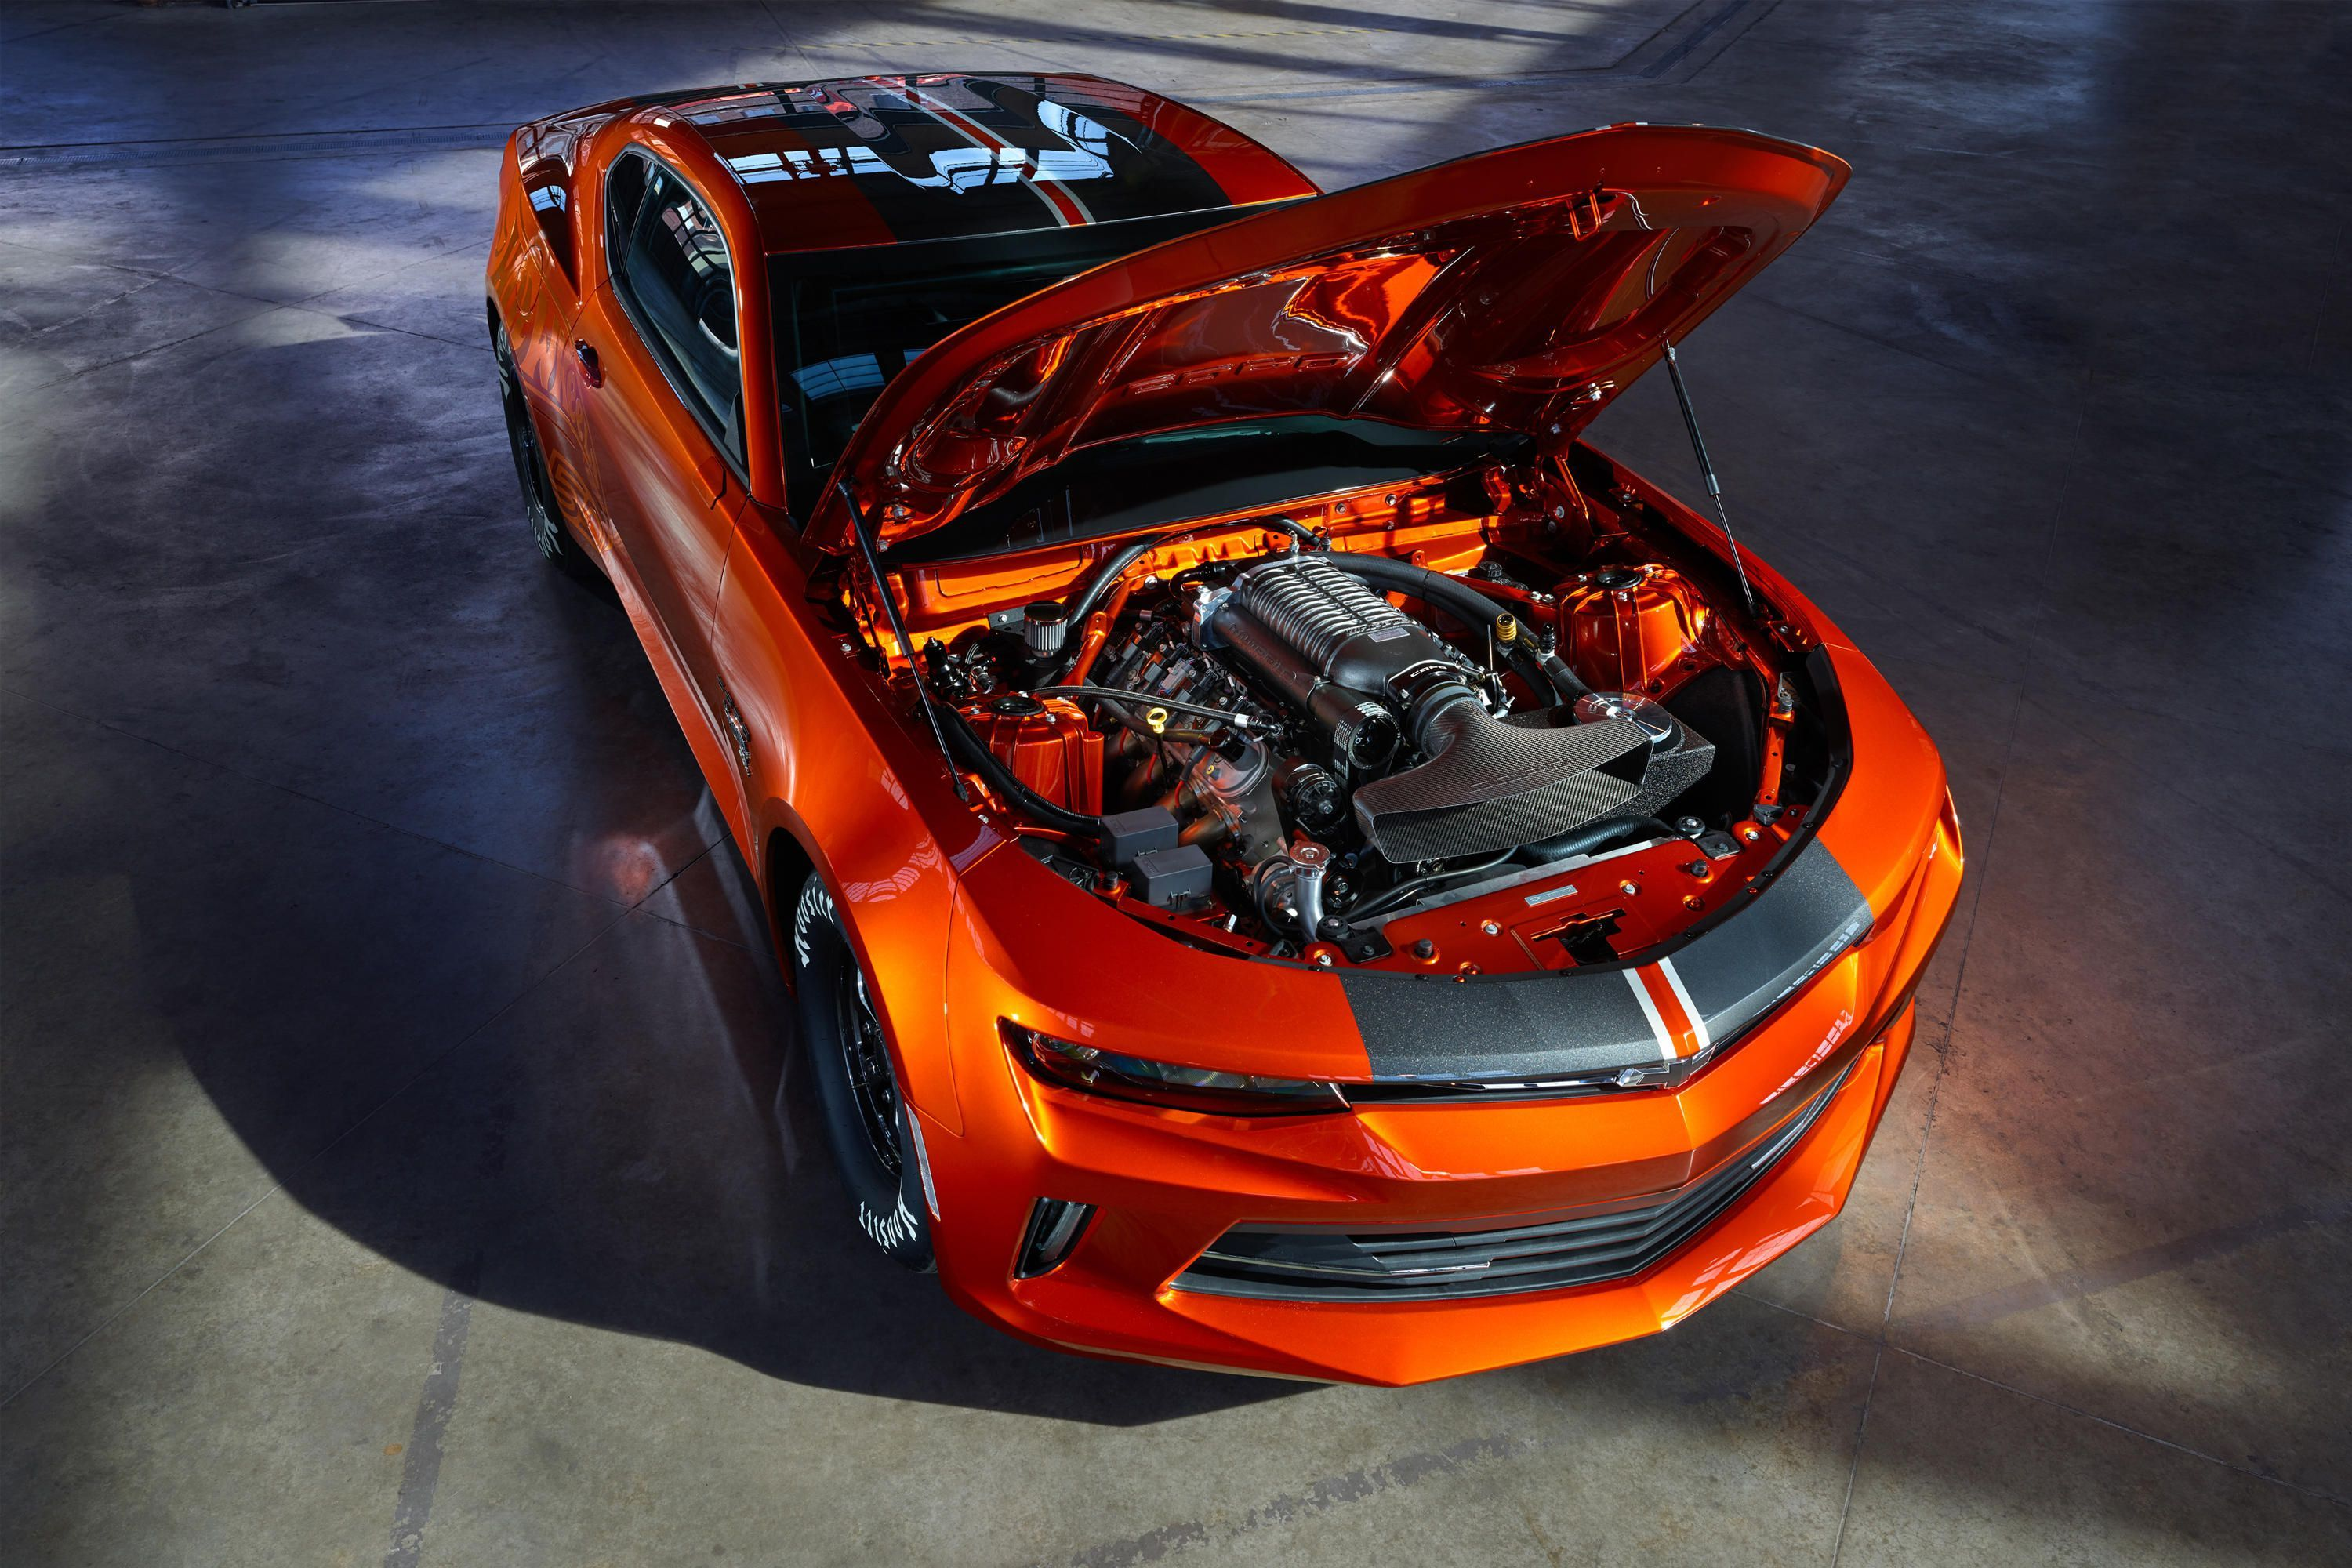 2018 Chevy Copo Camaro Is An 8 Second Factory Drag Beast Camaro Engine Chevrolet Camaro Chevrolet